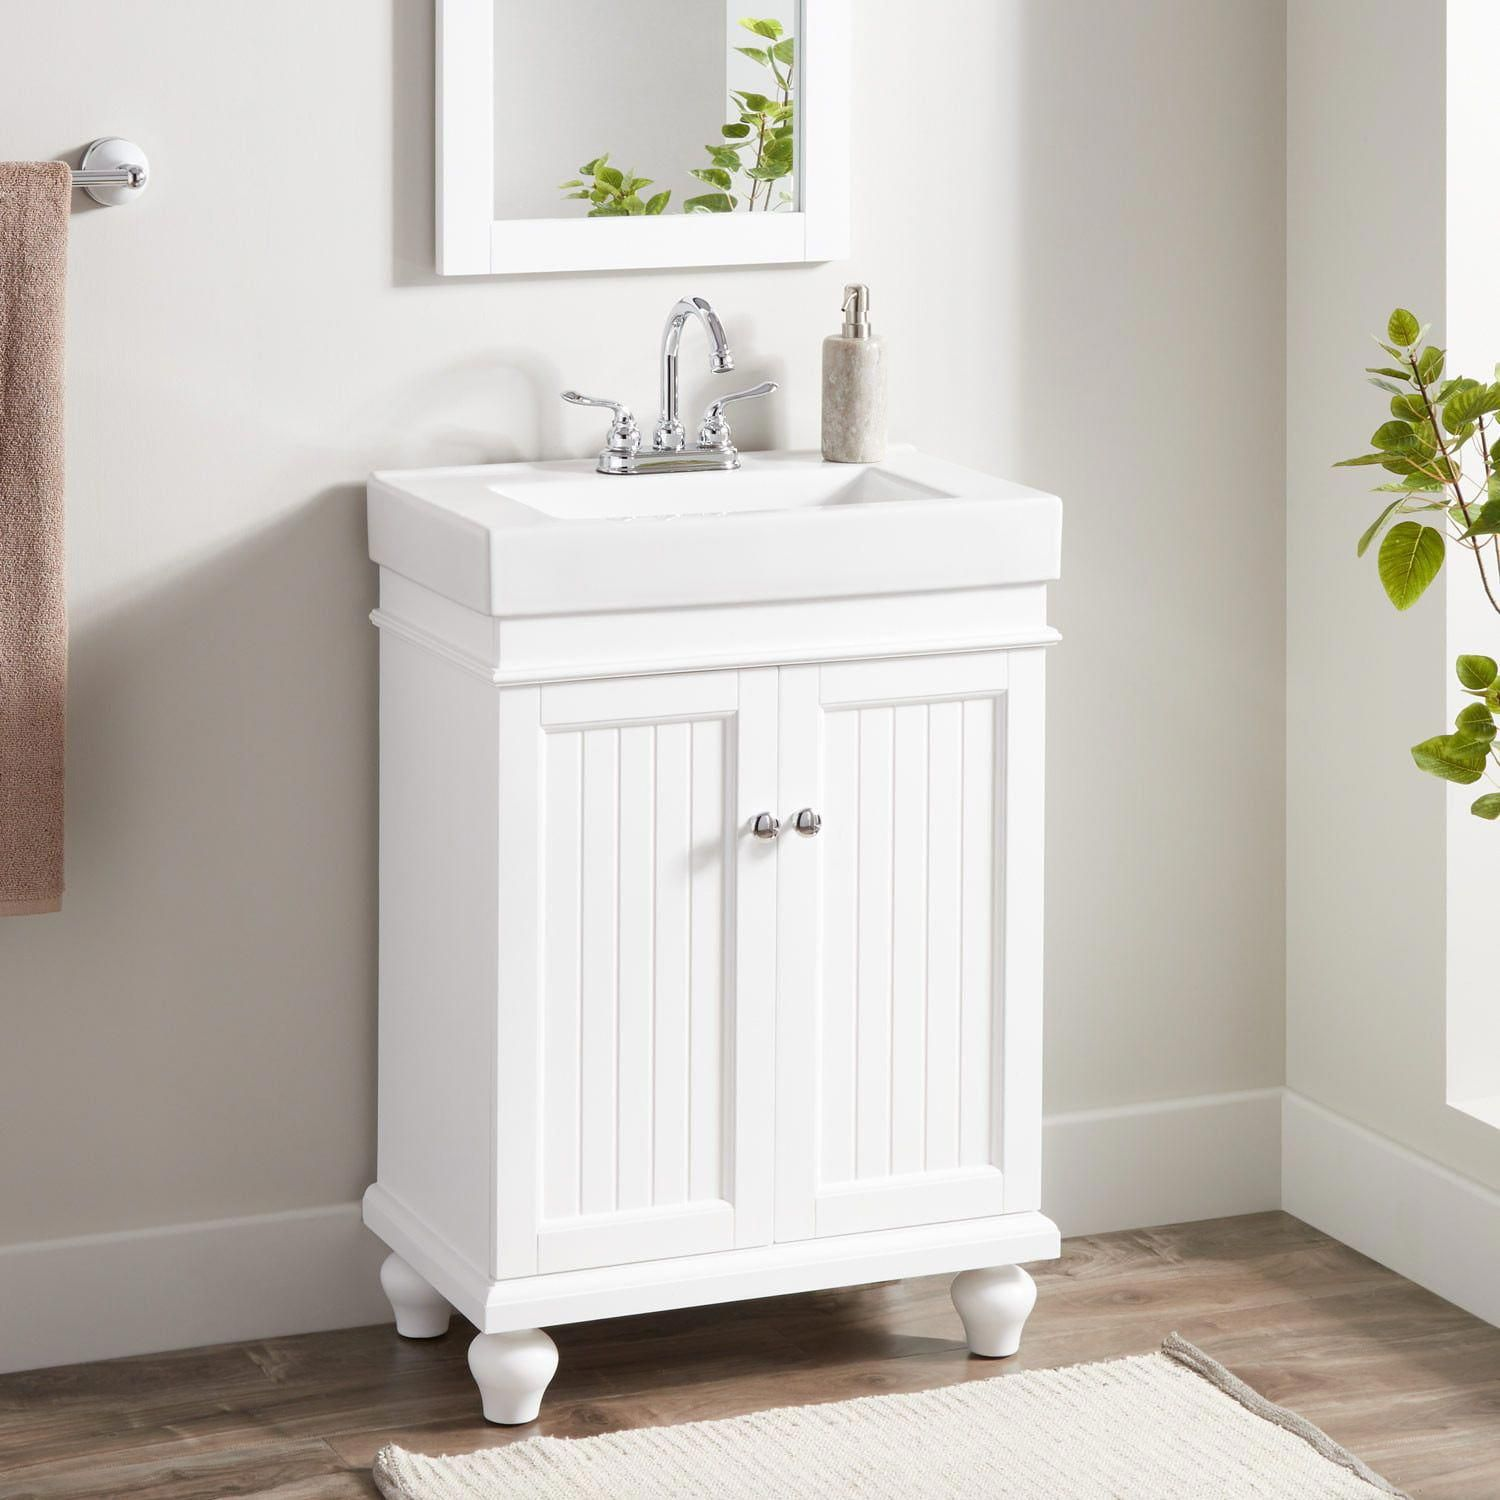 Review this short article today which talks about Bathroom